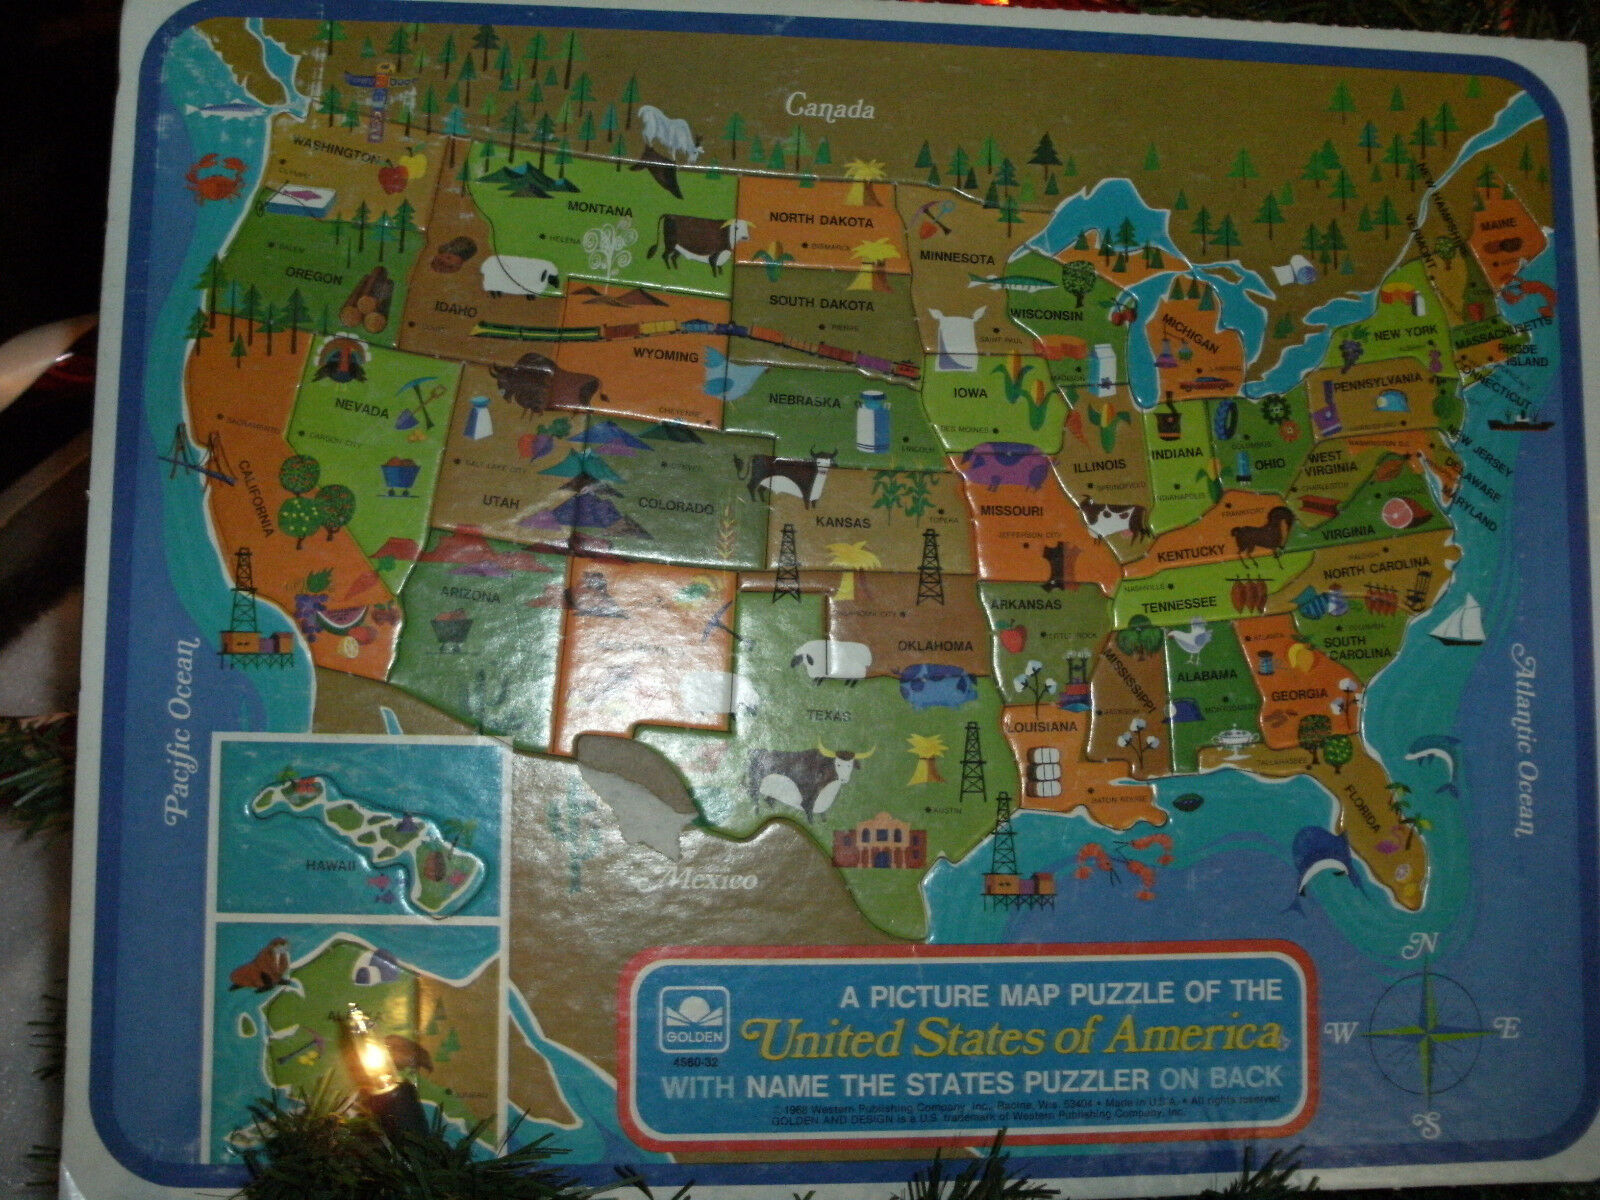 Encyclopedia britannica talking usa map puzzle